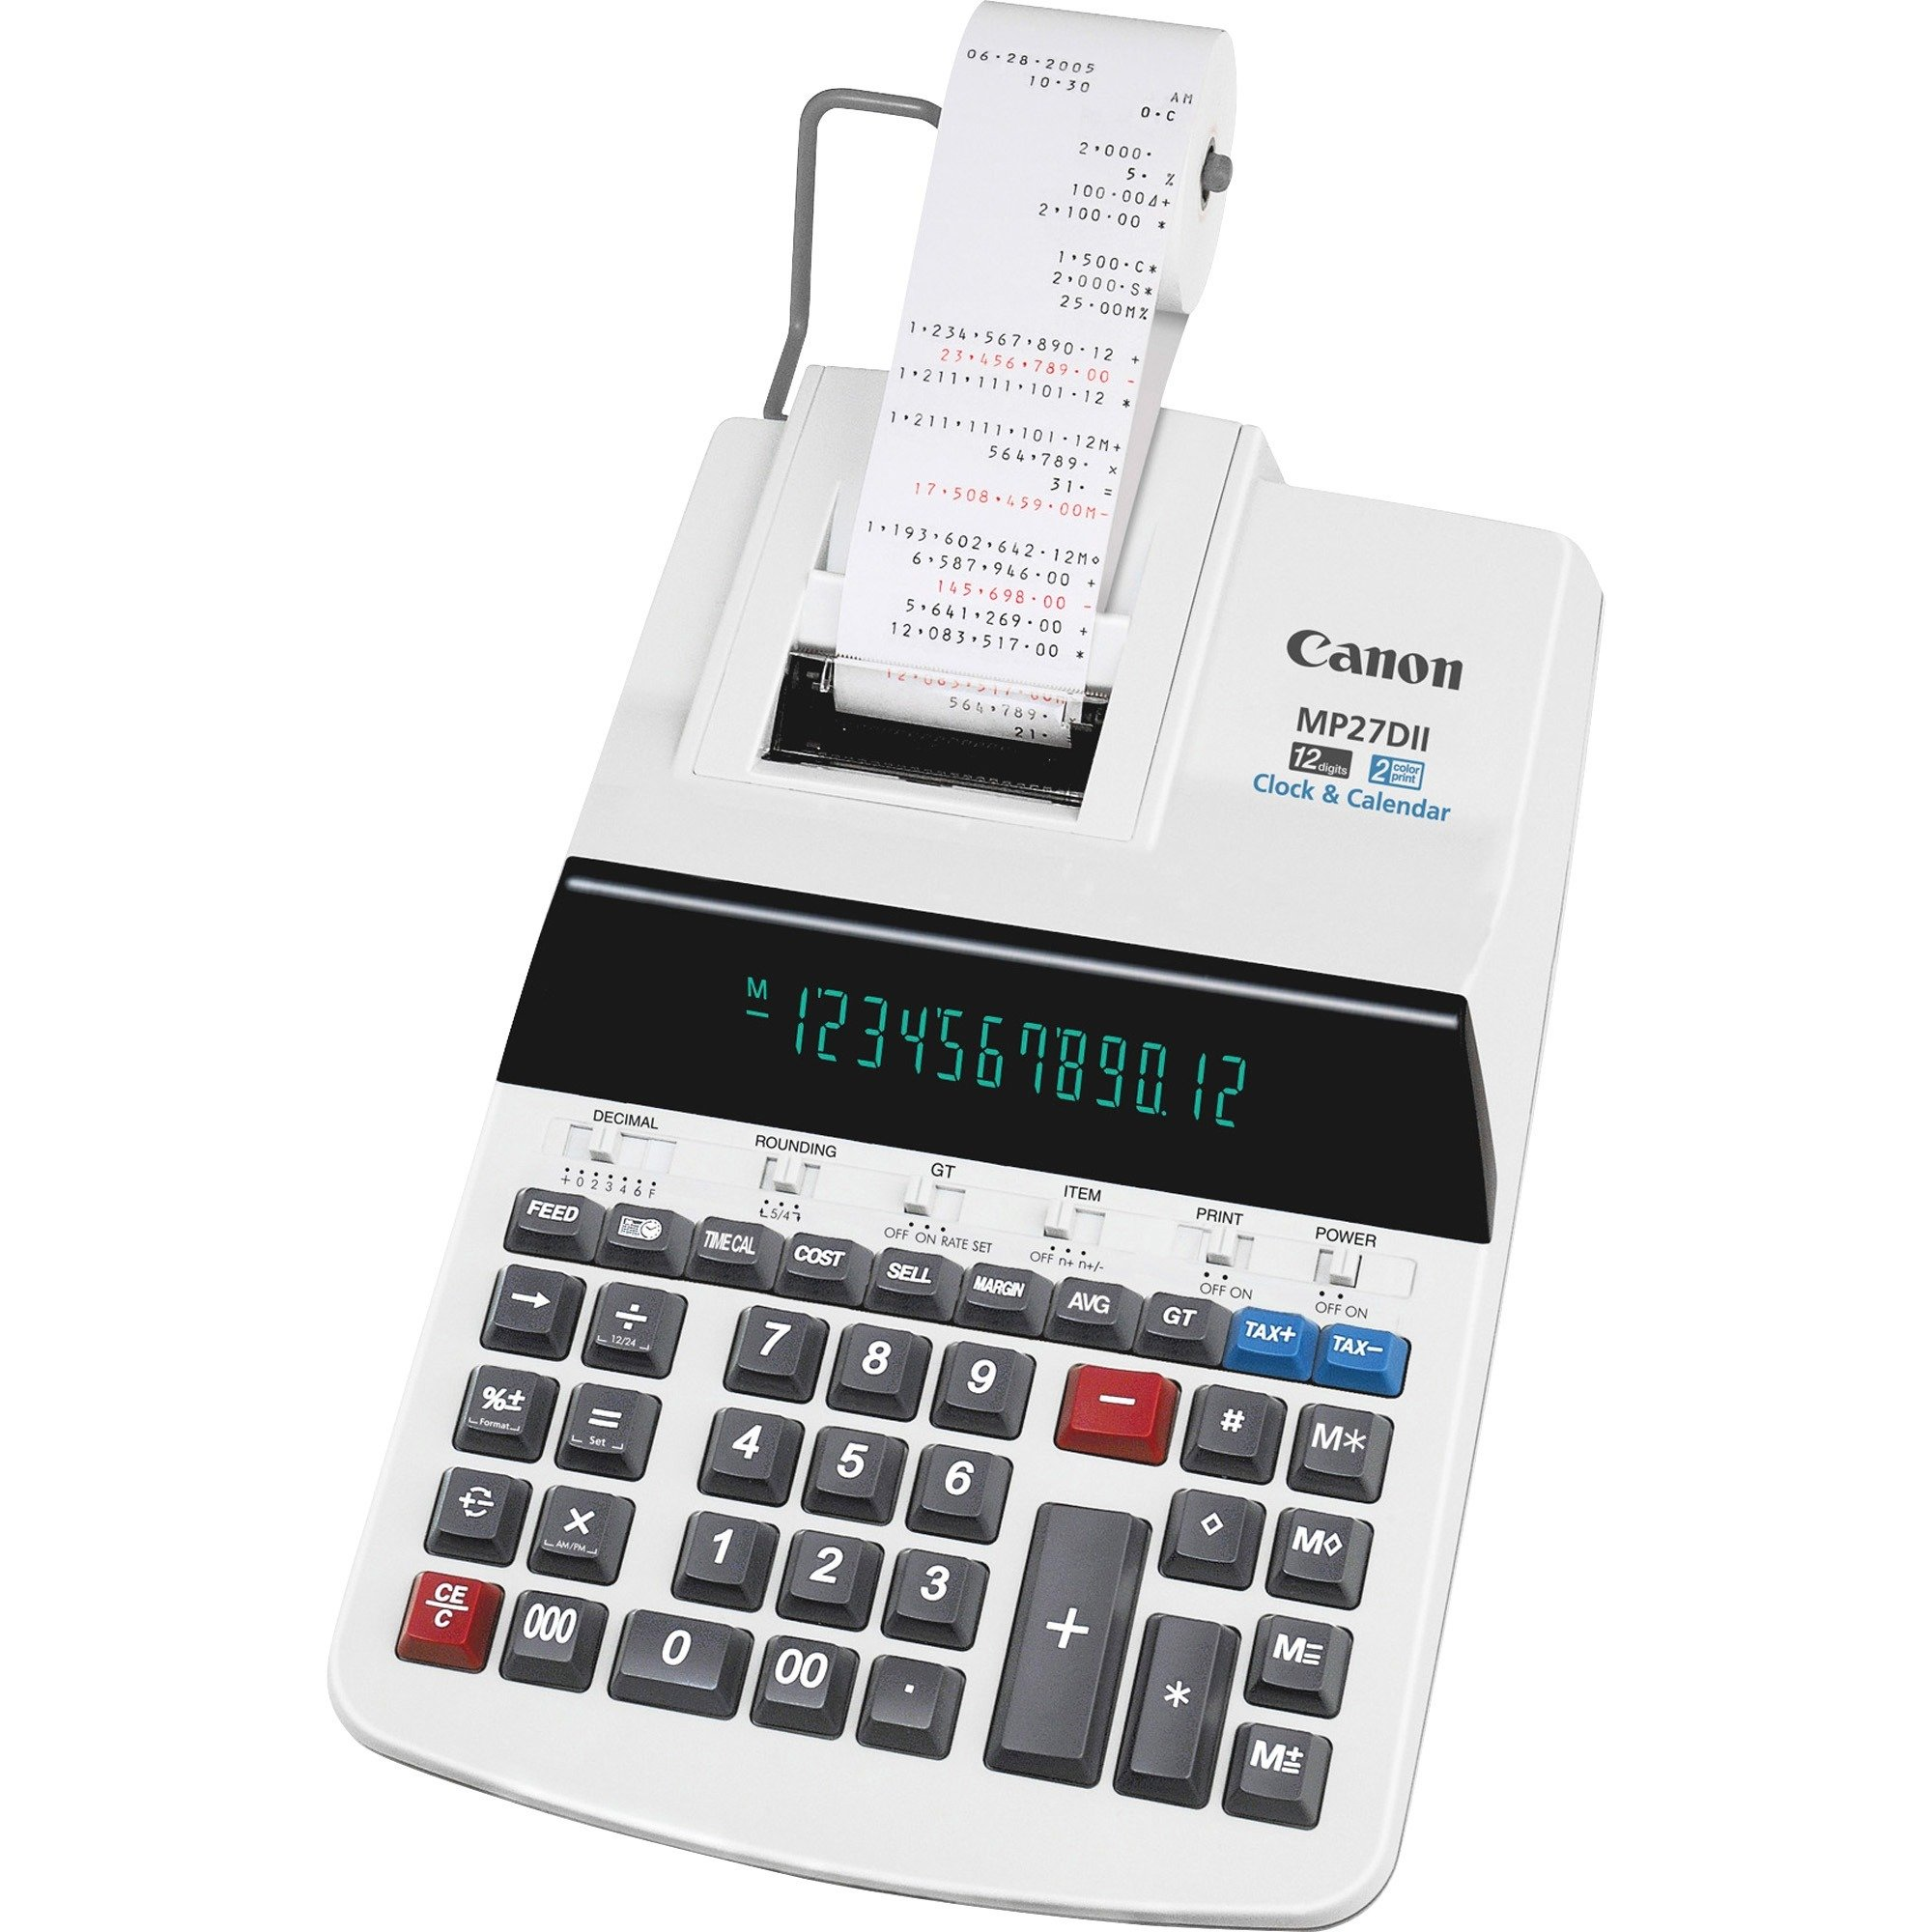 CNMMP27DII - Canon MP27DII Print Calculator